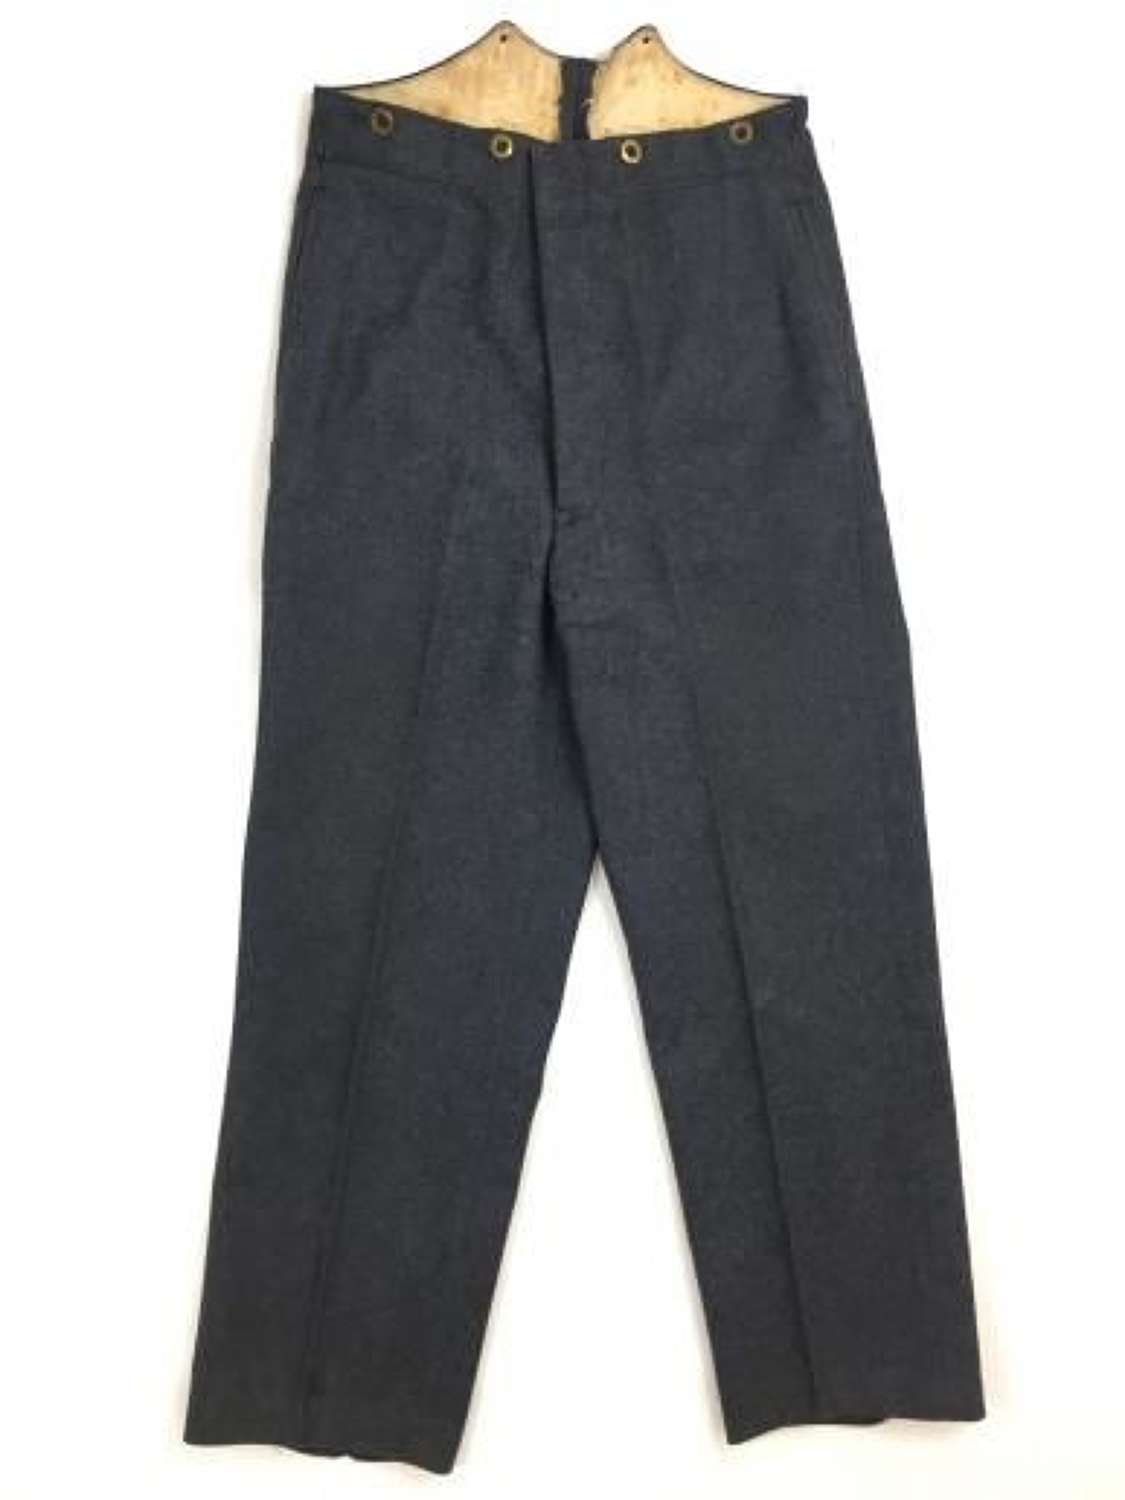 Original 1942 Dated RAF Ordinary Airman's Trousers with AV Stamp